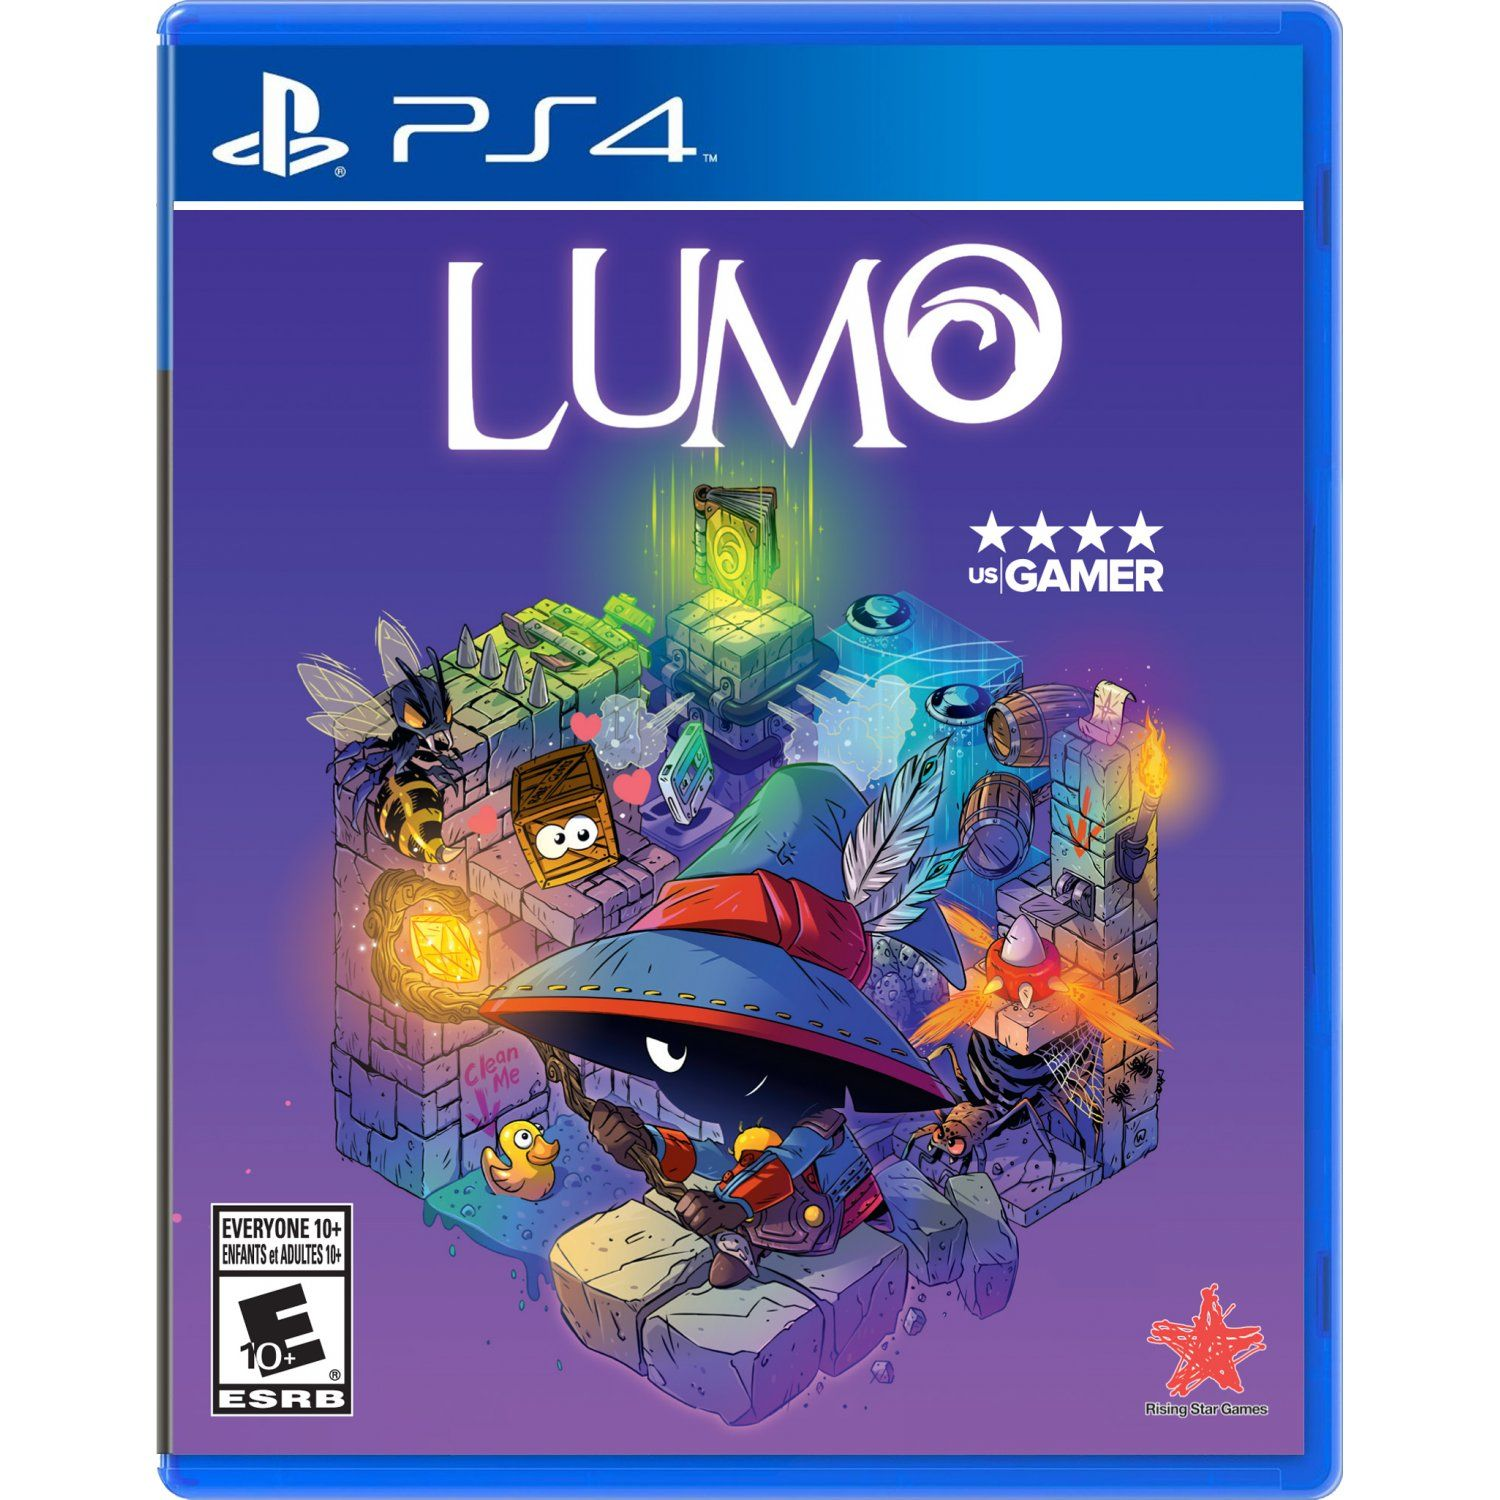 Lumo Nintendo switch games, Video games for kids